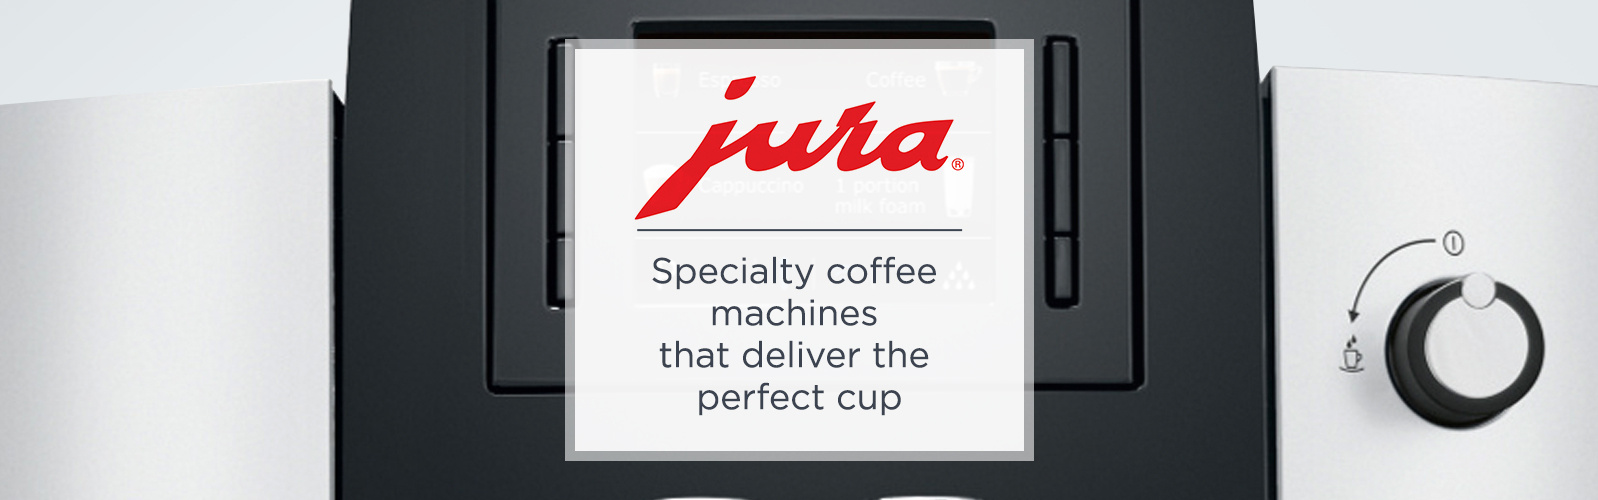 Jura Specialty coffee machines that deliver the perfect cup